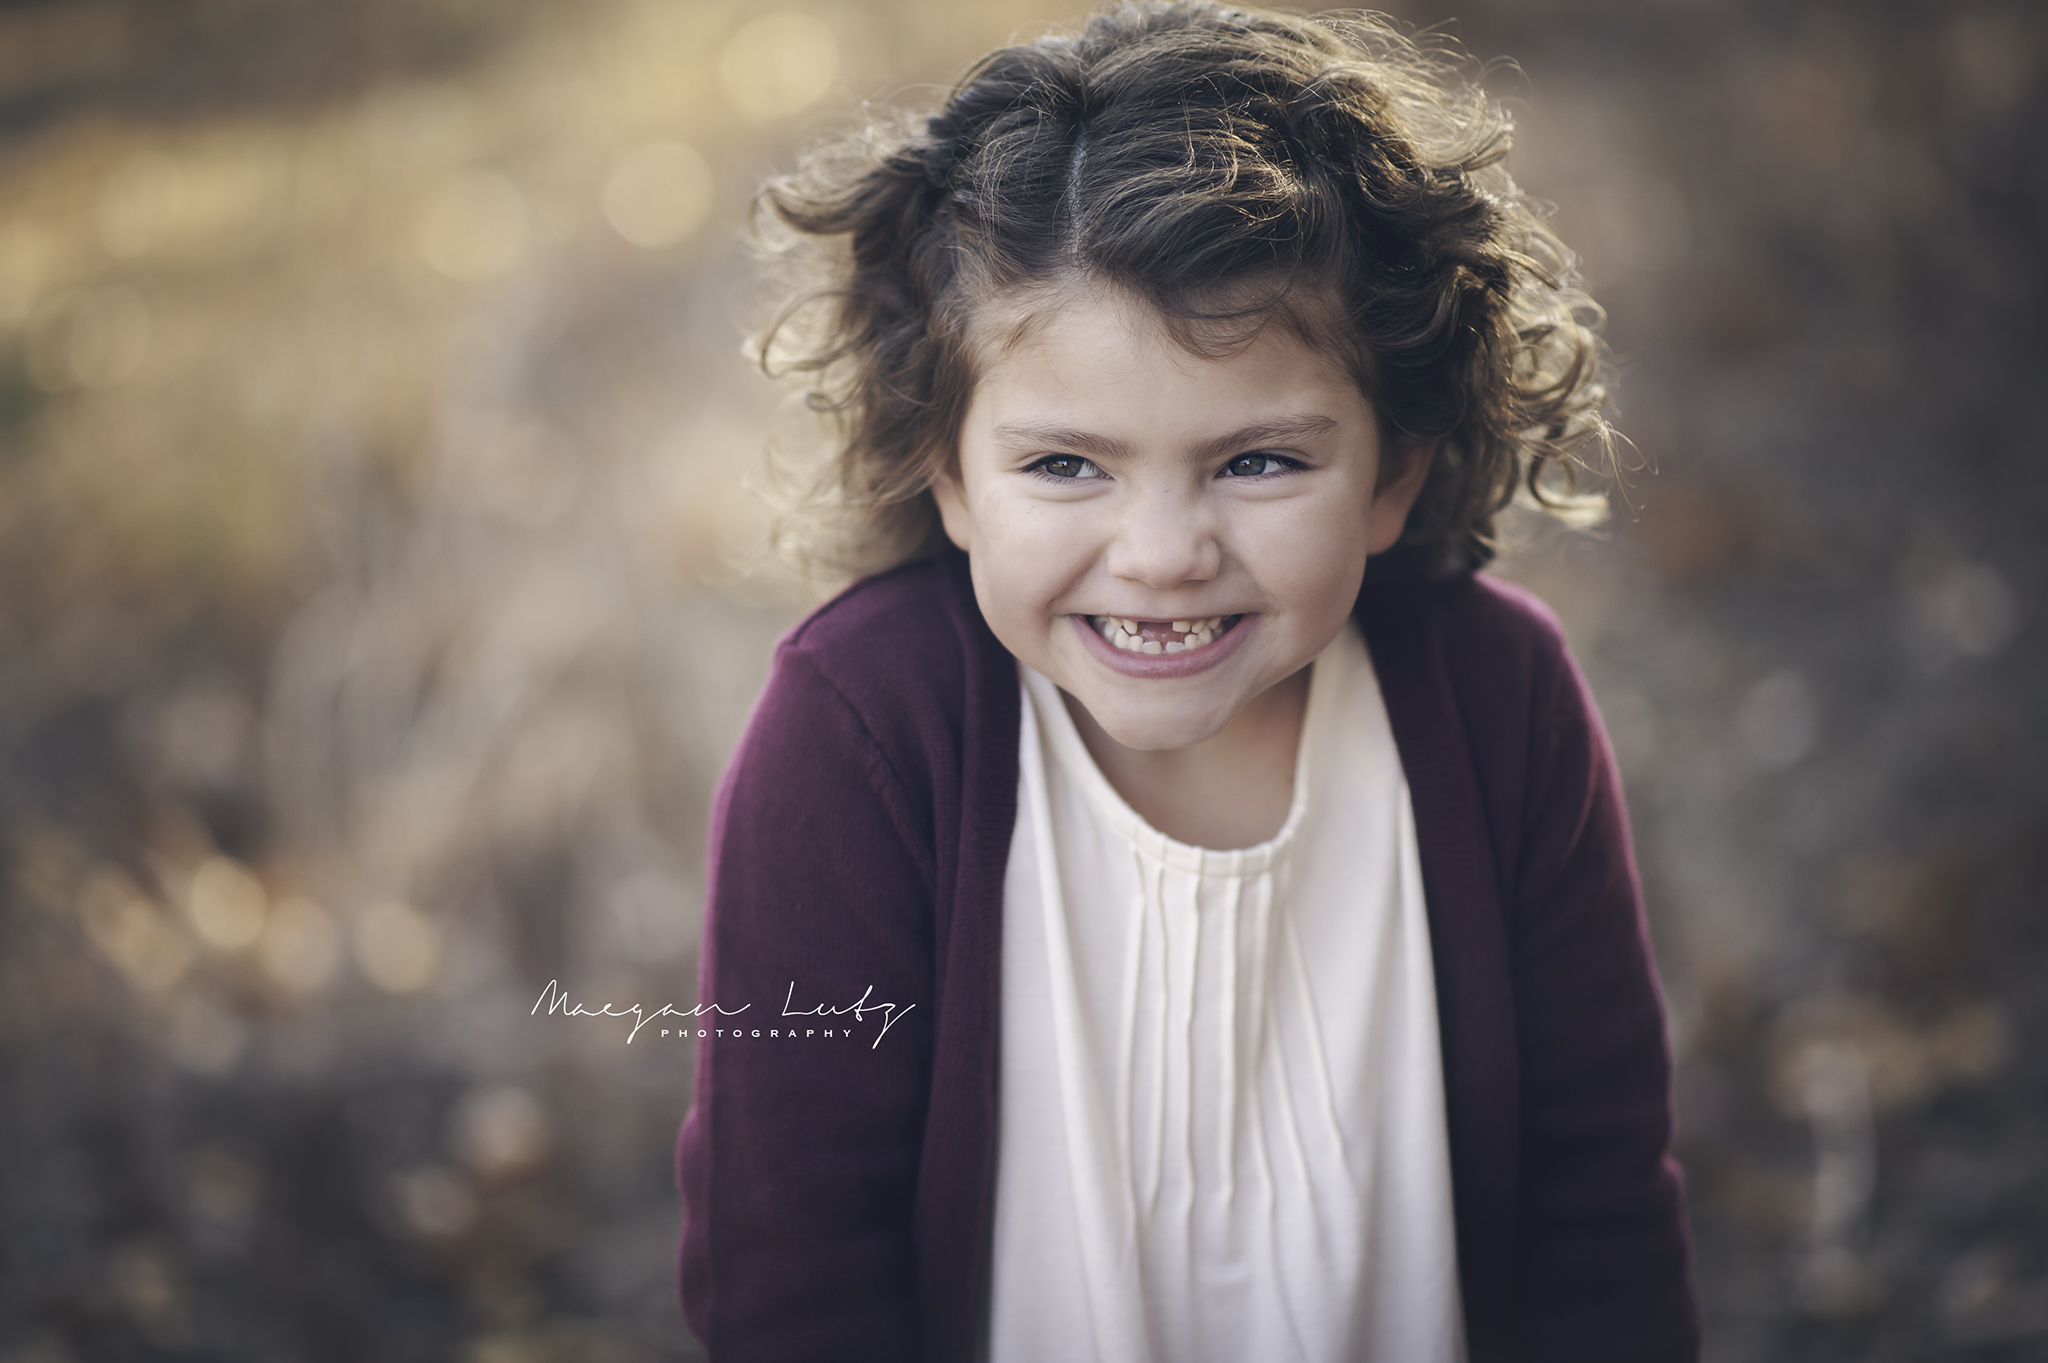 NEPA Northeastern Pennsylvania family and portrait photographer